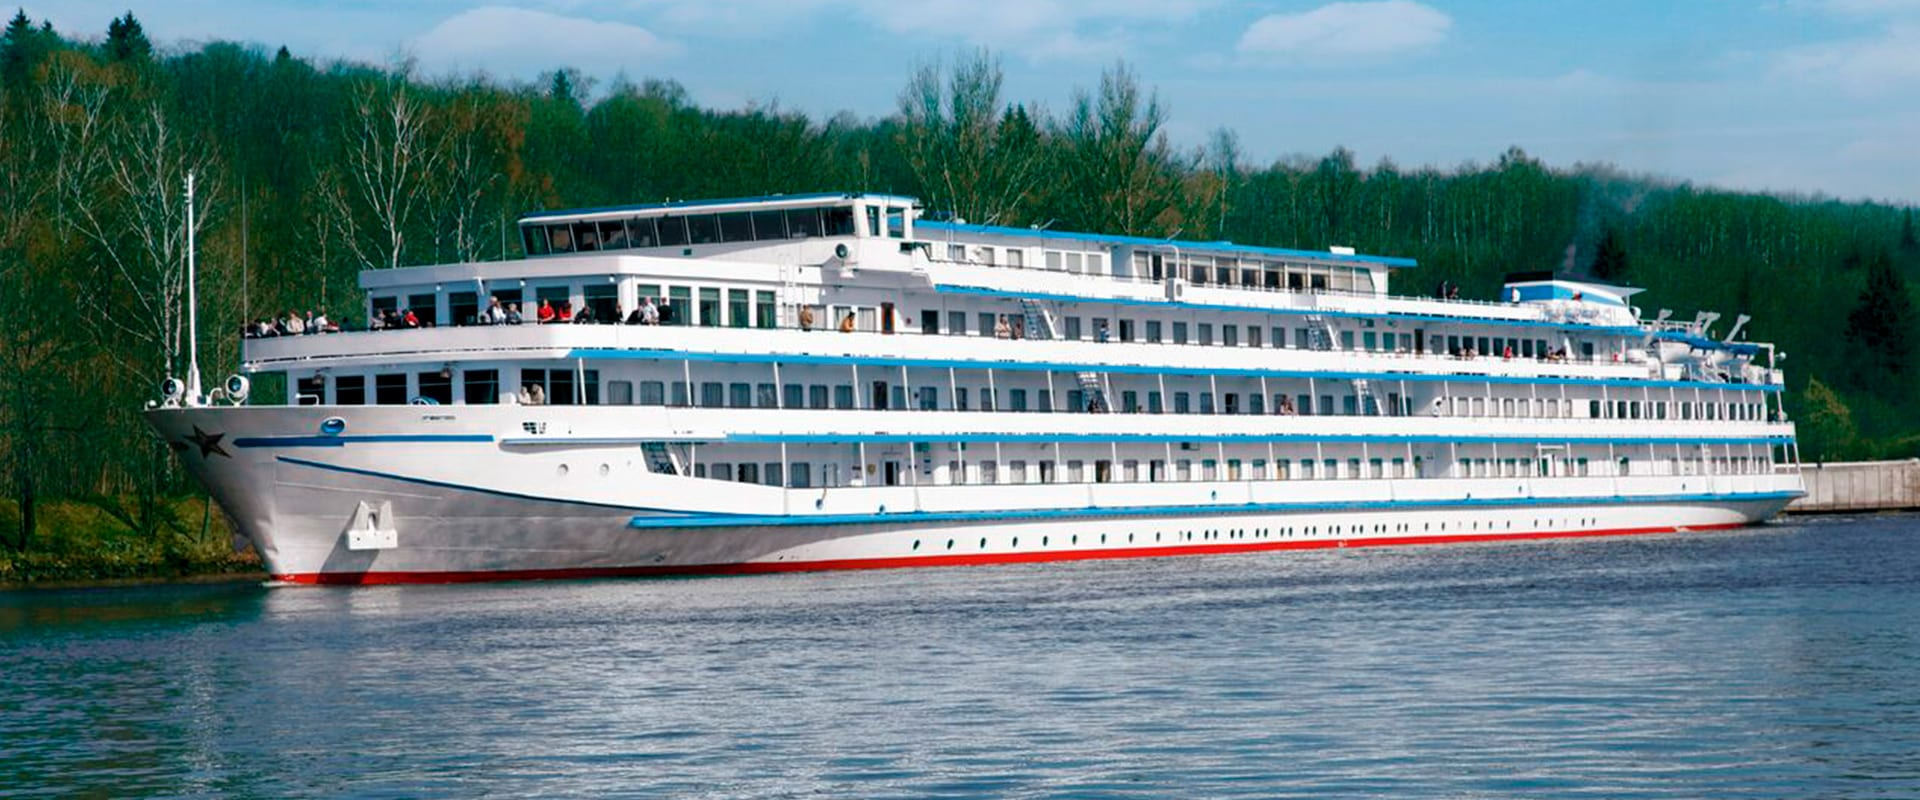 CRUZEIRO IMPERIAL RIVER CRUISES MOSCOU – SÃO PETERSBURGO A BORDO DO NS RACHMANINOFF